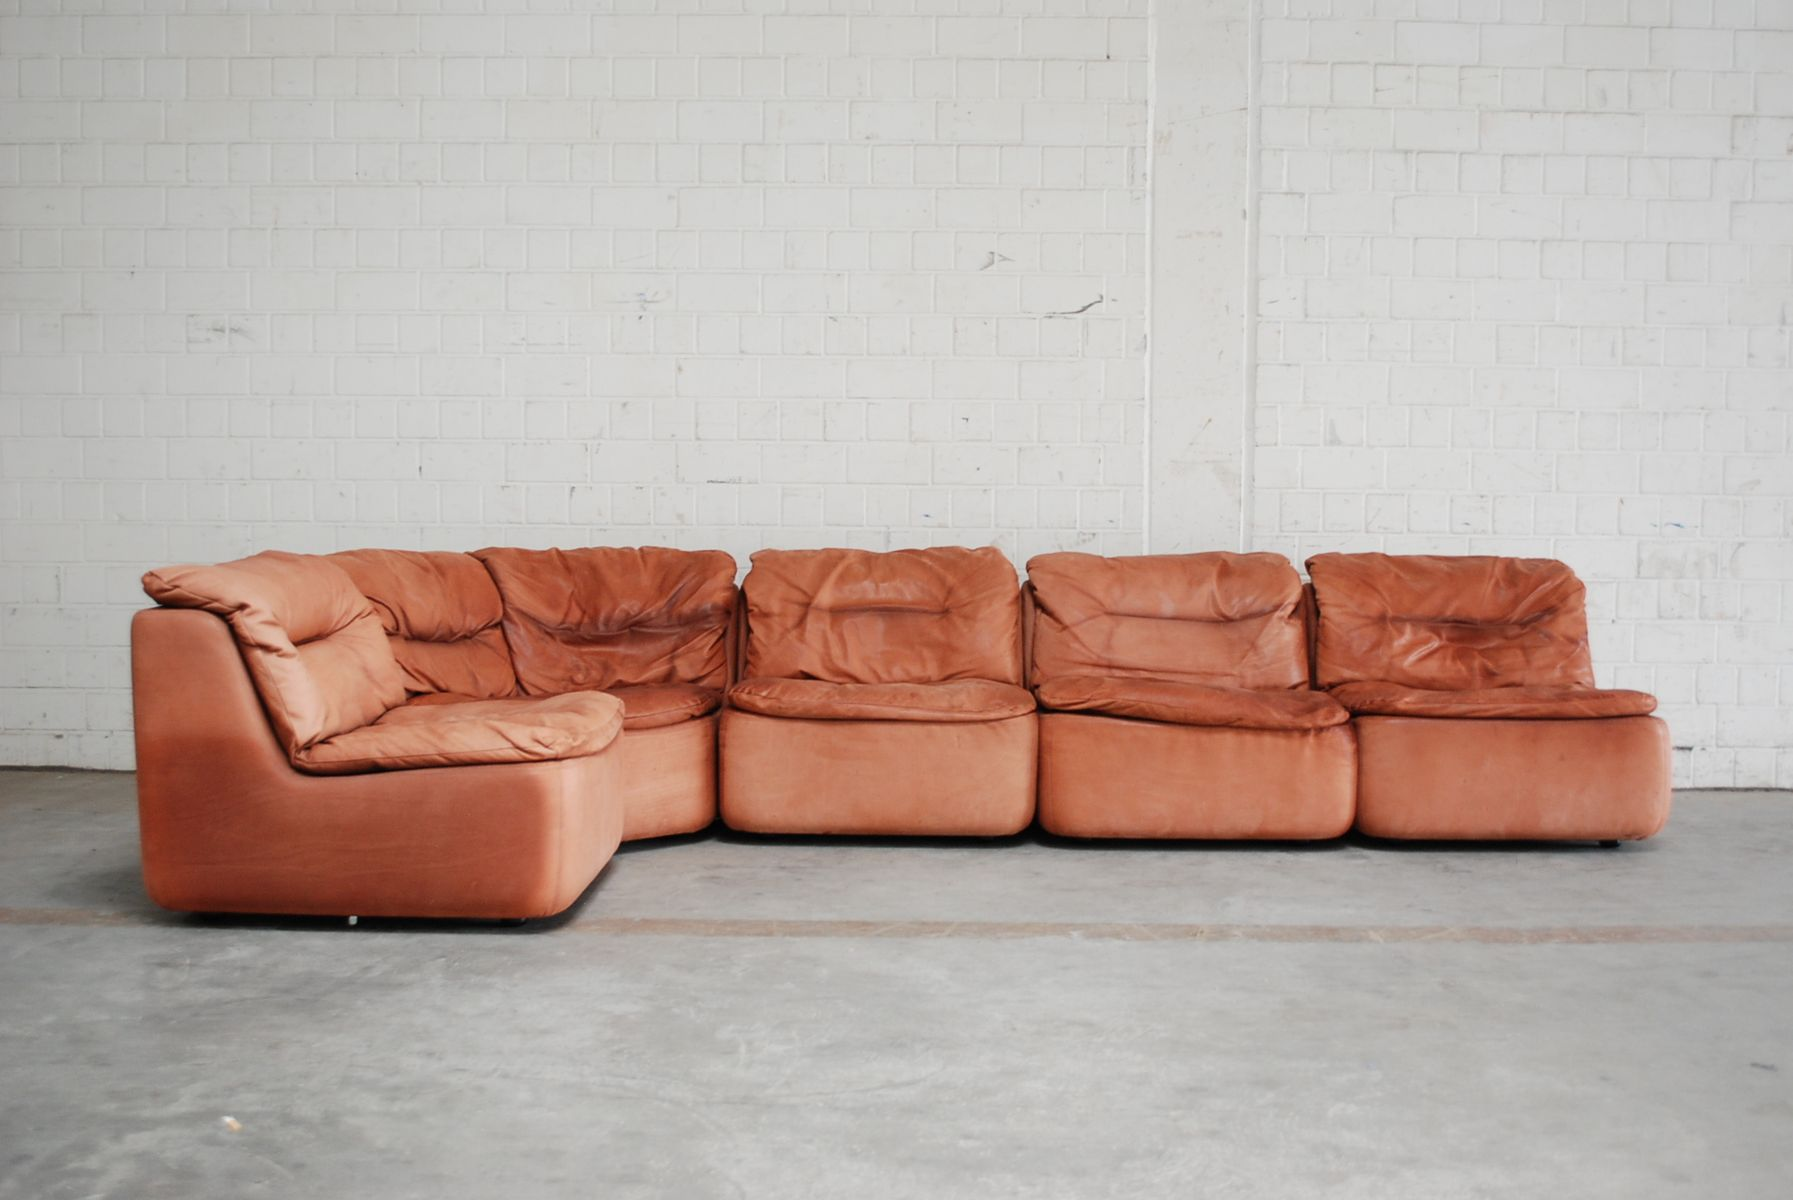 Plus Modular Leather Sofa By Friedrich Hill For Walter Knoll For Sale At Pamono